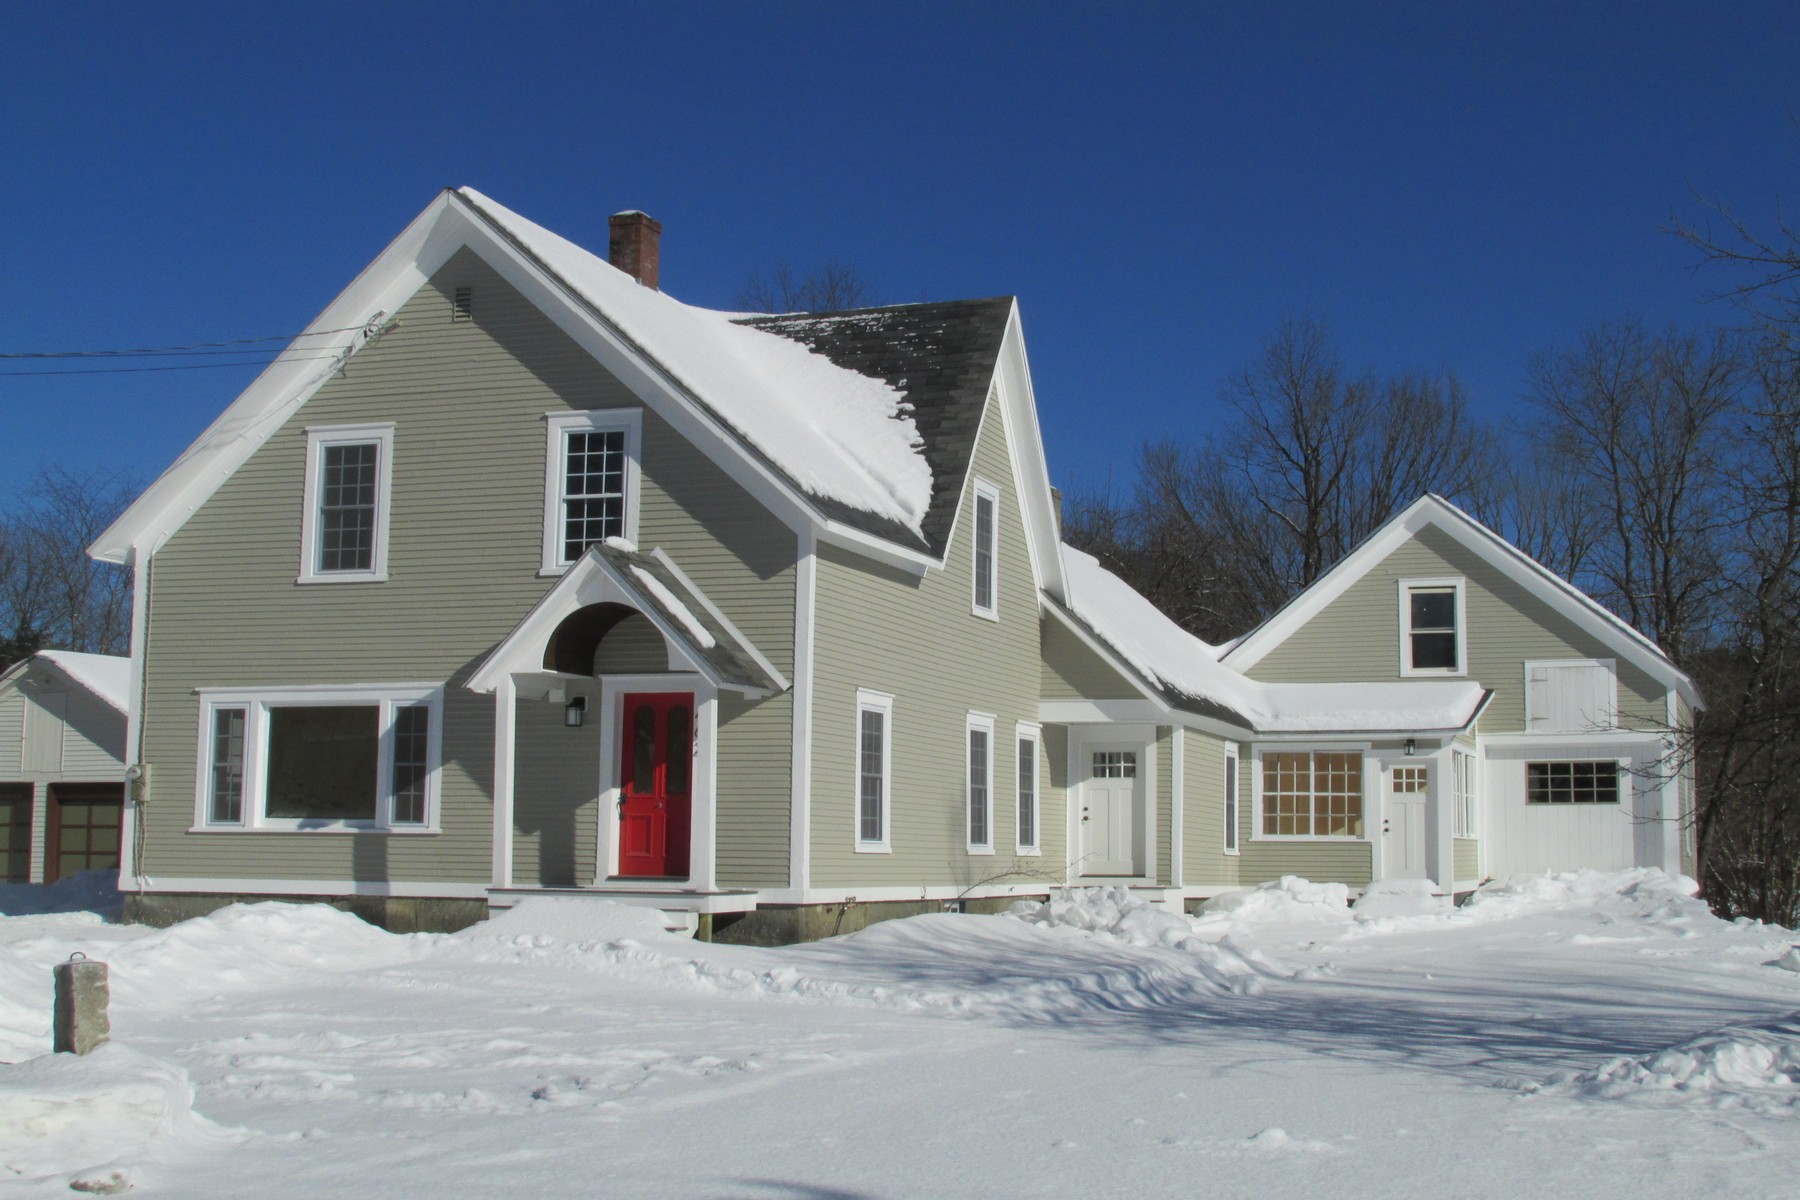 Single Family Home for Sale at Charming Village Farmhouse 462 Elm St Chester, Vermont 05143 United States